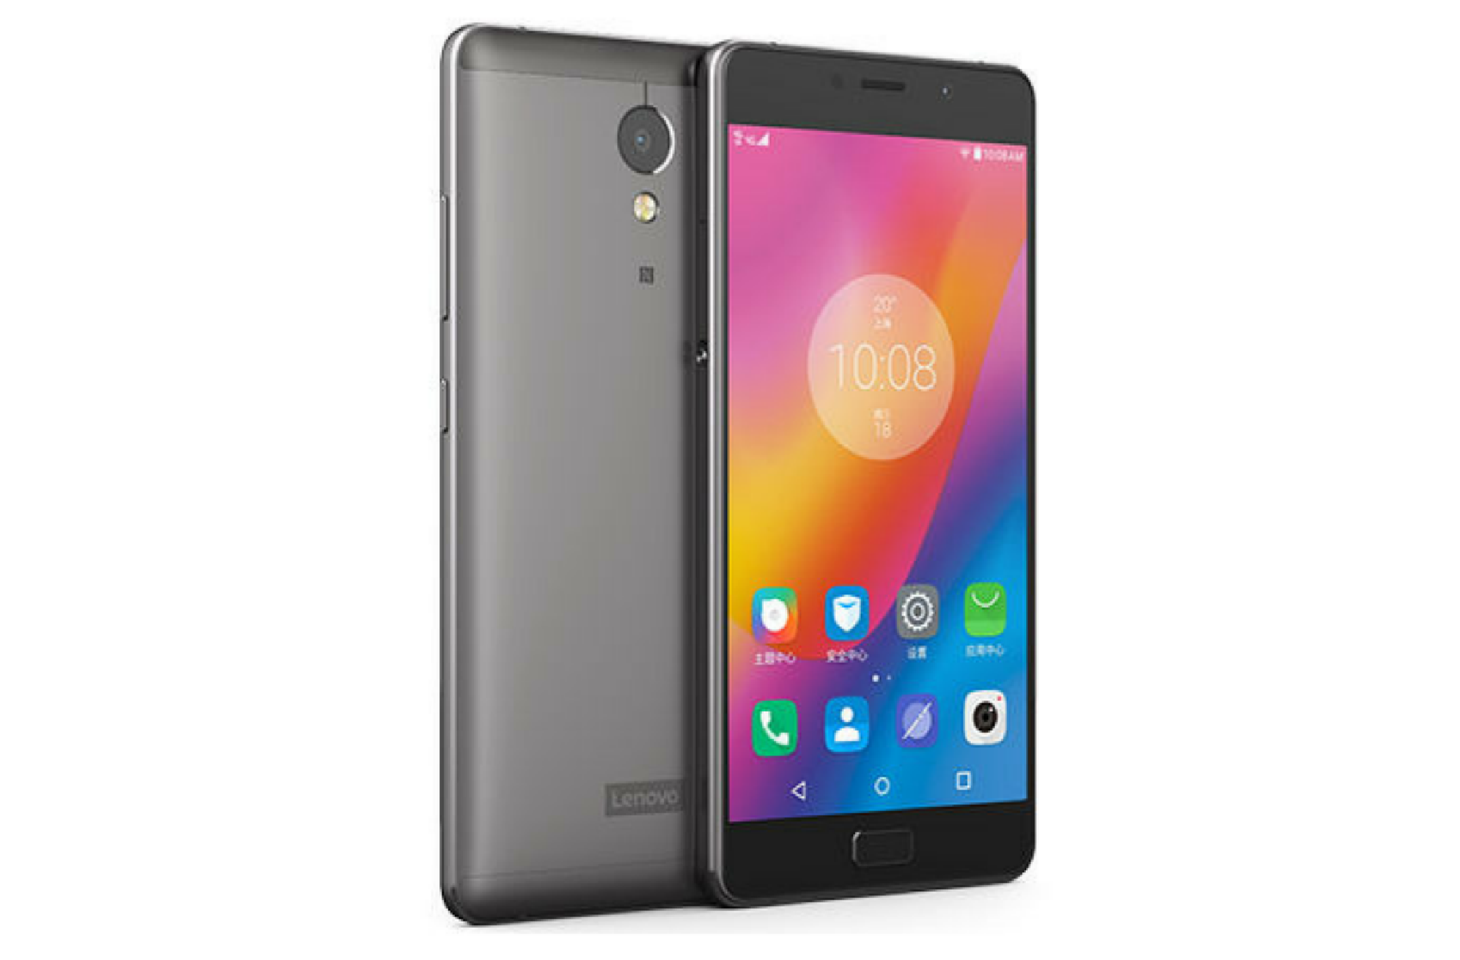 lenovo p3 smartphone leaked with massive 6gb ram 64gb. Black Bedroom Furniture Sets. Home Design Ideas